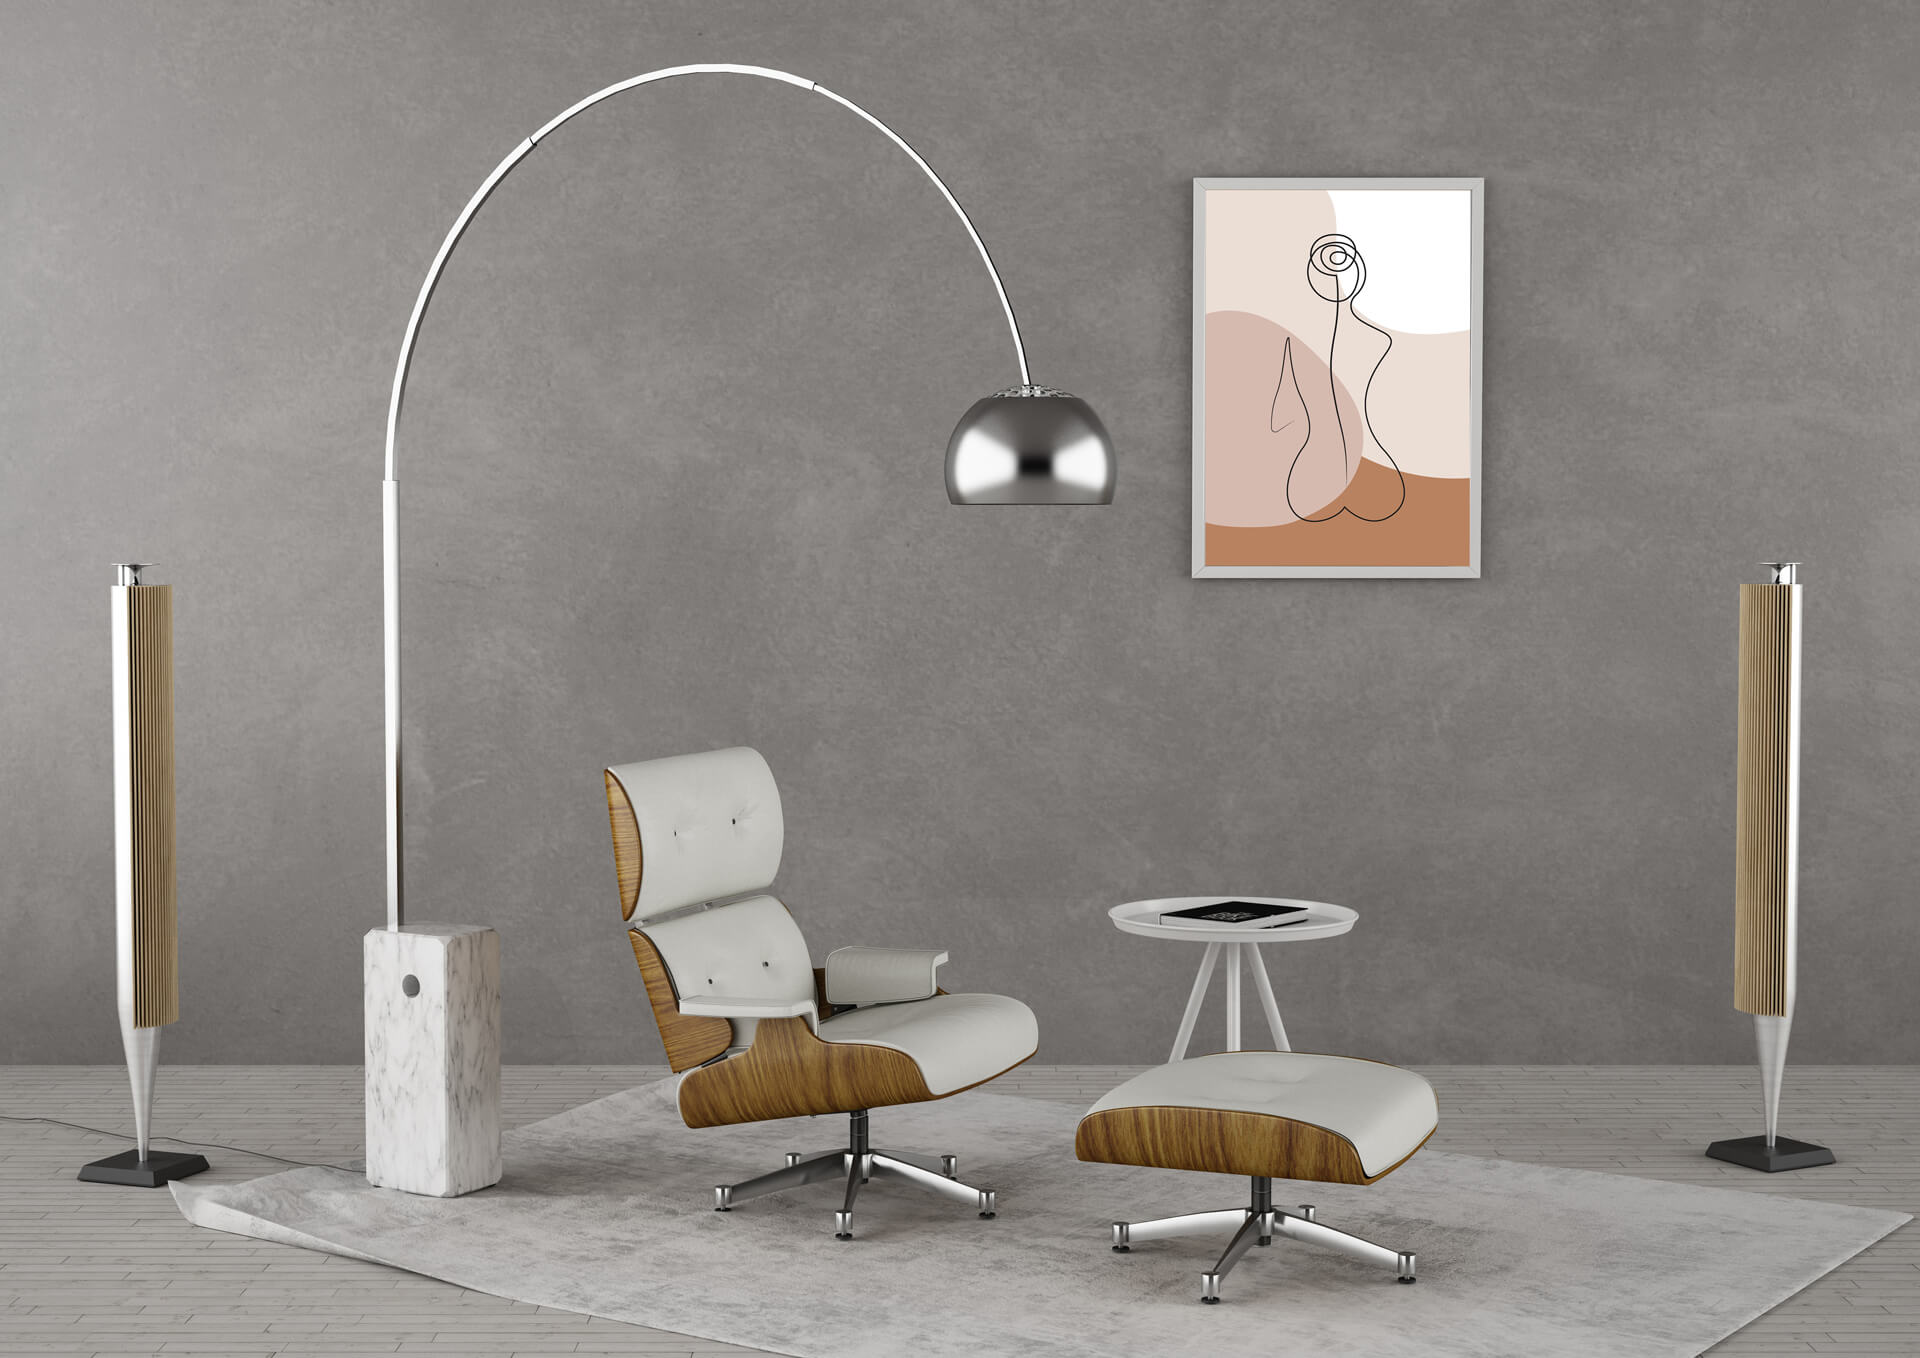 Five iconic lamp designs which everyone should know